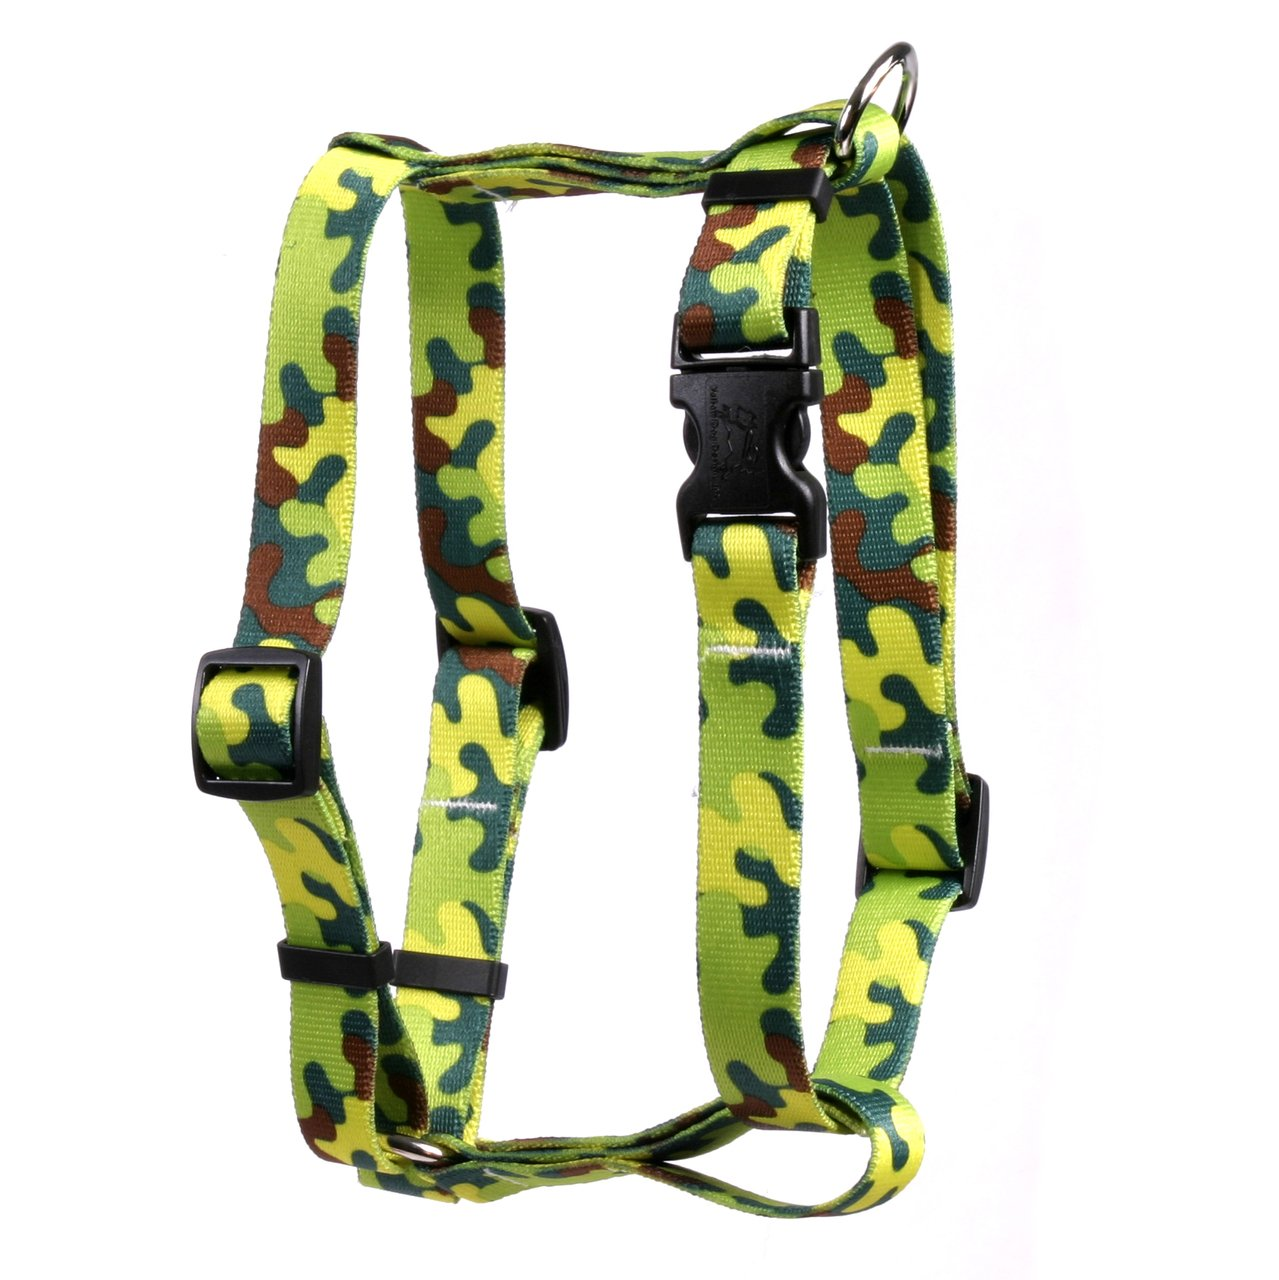 Yellow Dog Design Neon Camo Roman Style H Dog Harness, Small/Medium-3/4 Wide and fits Chest of 14 to 20'' by Yellow Dog Design